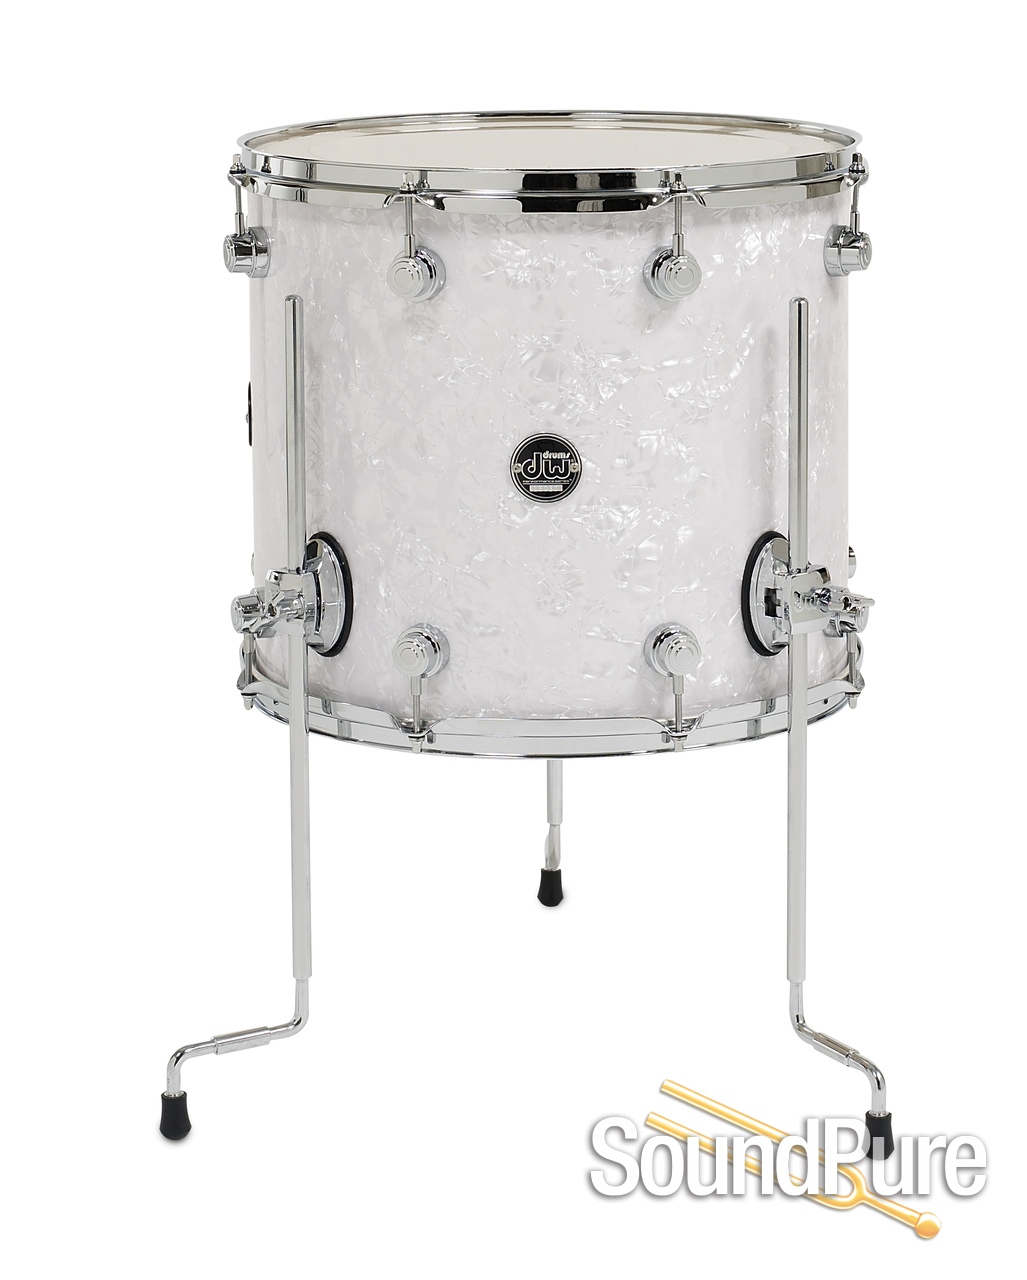 Dw performance series 14x16 floor tom white marine pearl for 16 x 14 floor tom